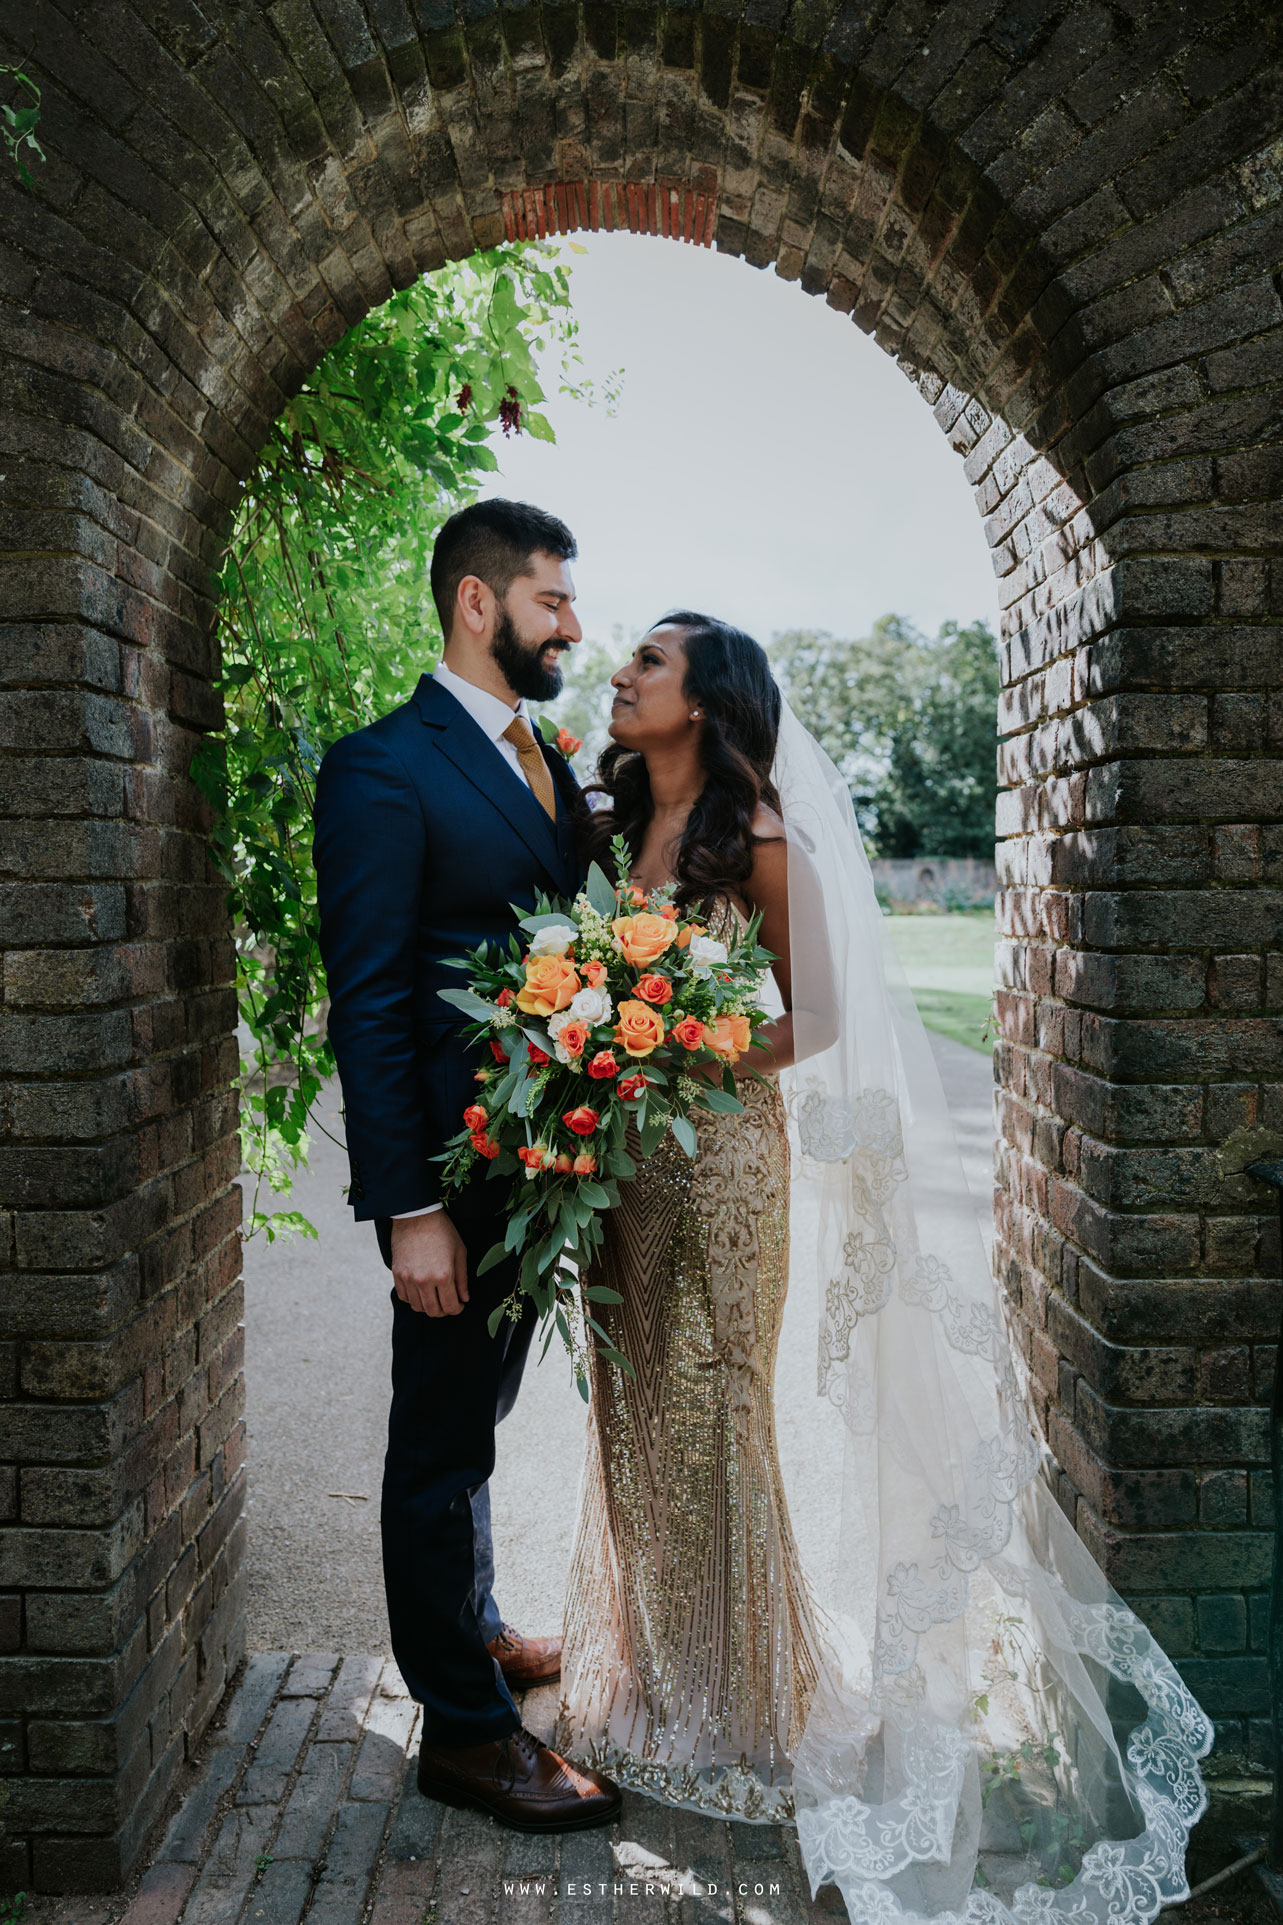 Twickenham_Registry_Office_London_Wedding_Ceremony_Esther_Wild_Photographer_IMG_0612.jpg